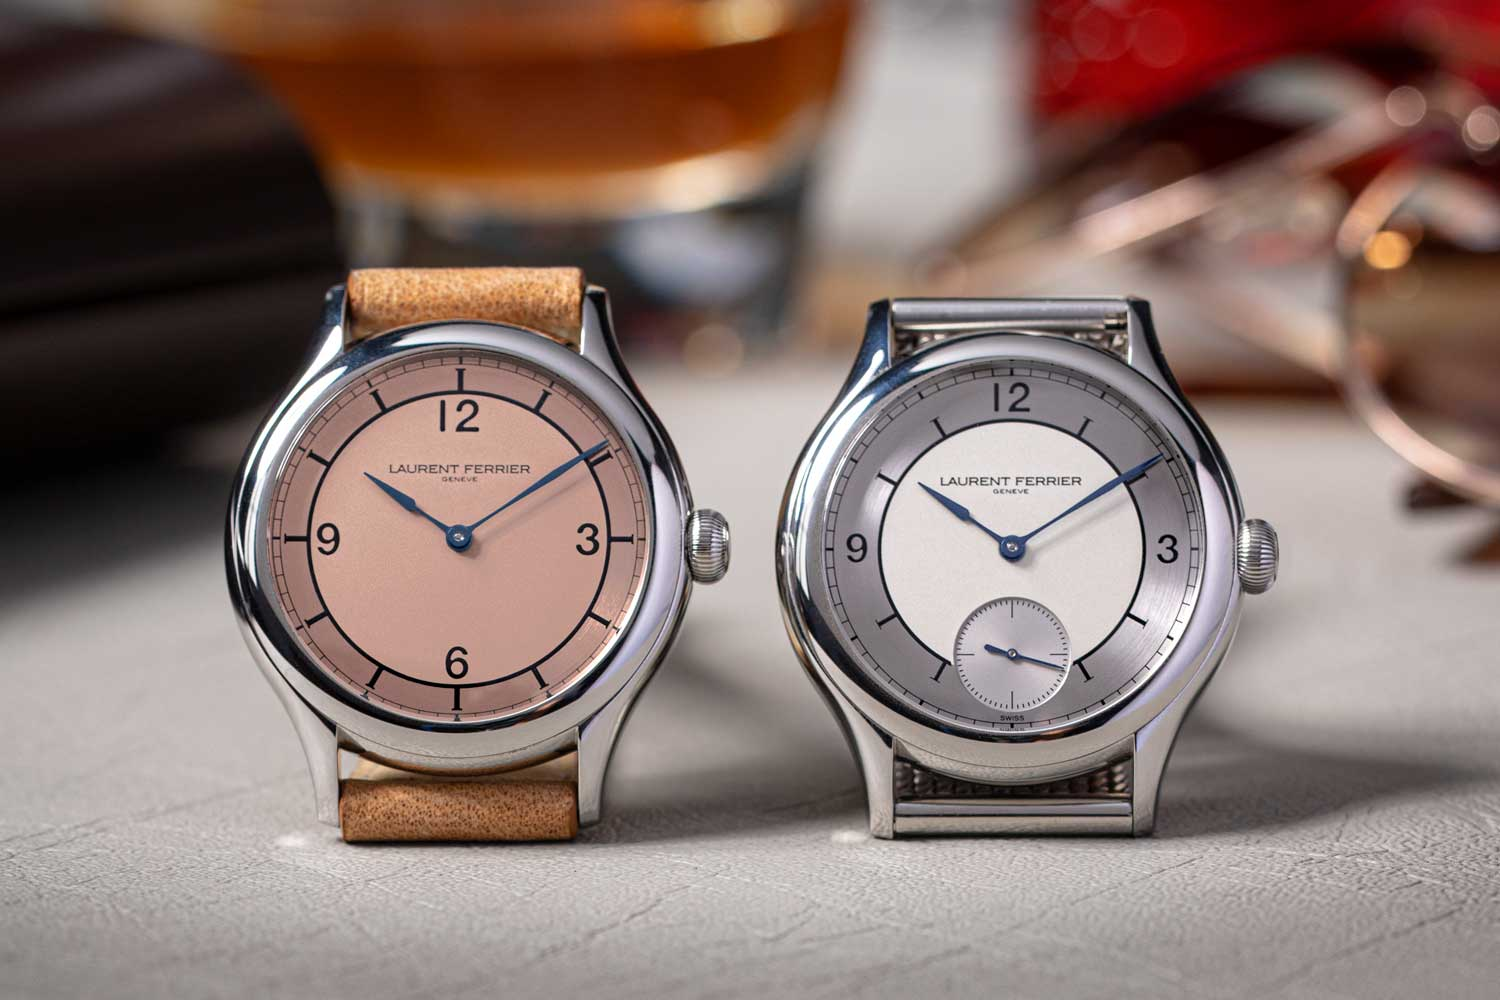 (From left) The Laurent Ferrier Steel Galet Micro-Rotor Salmon Dial for Revolution (1-of-1) and the Laurent Ferrier Classic Origin for Revolution & The Rake, both watches are rendered in steel and measure in at 40mm on the diameter (©Revolution)